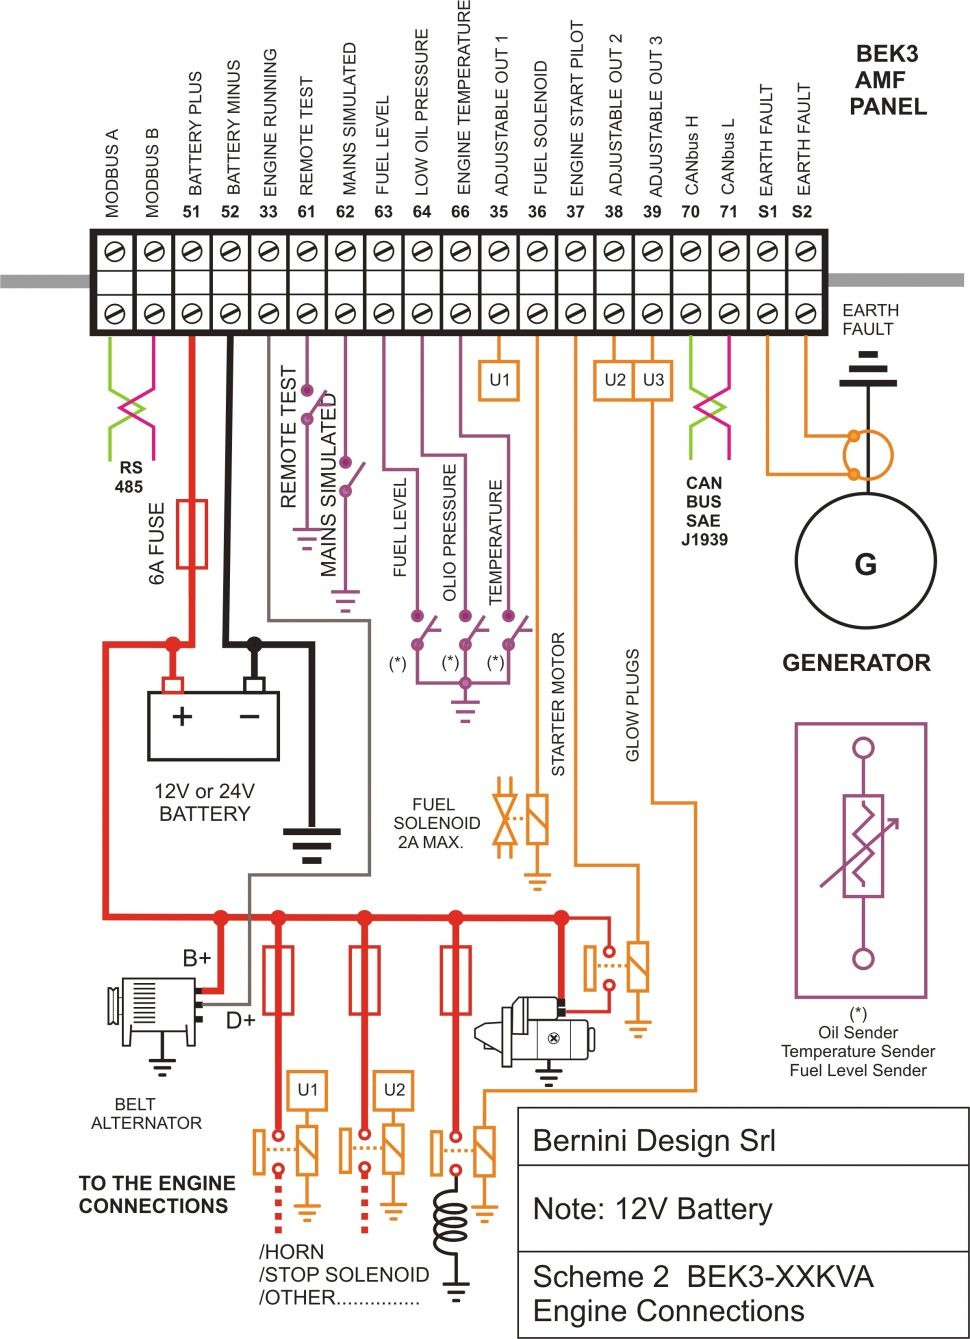 Diagram Phenomenal Electric Lightring Image Ideas House Electrical Panel In Remarkable Fuse Box Switch 970x1339th